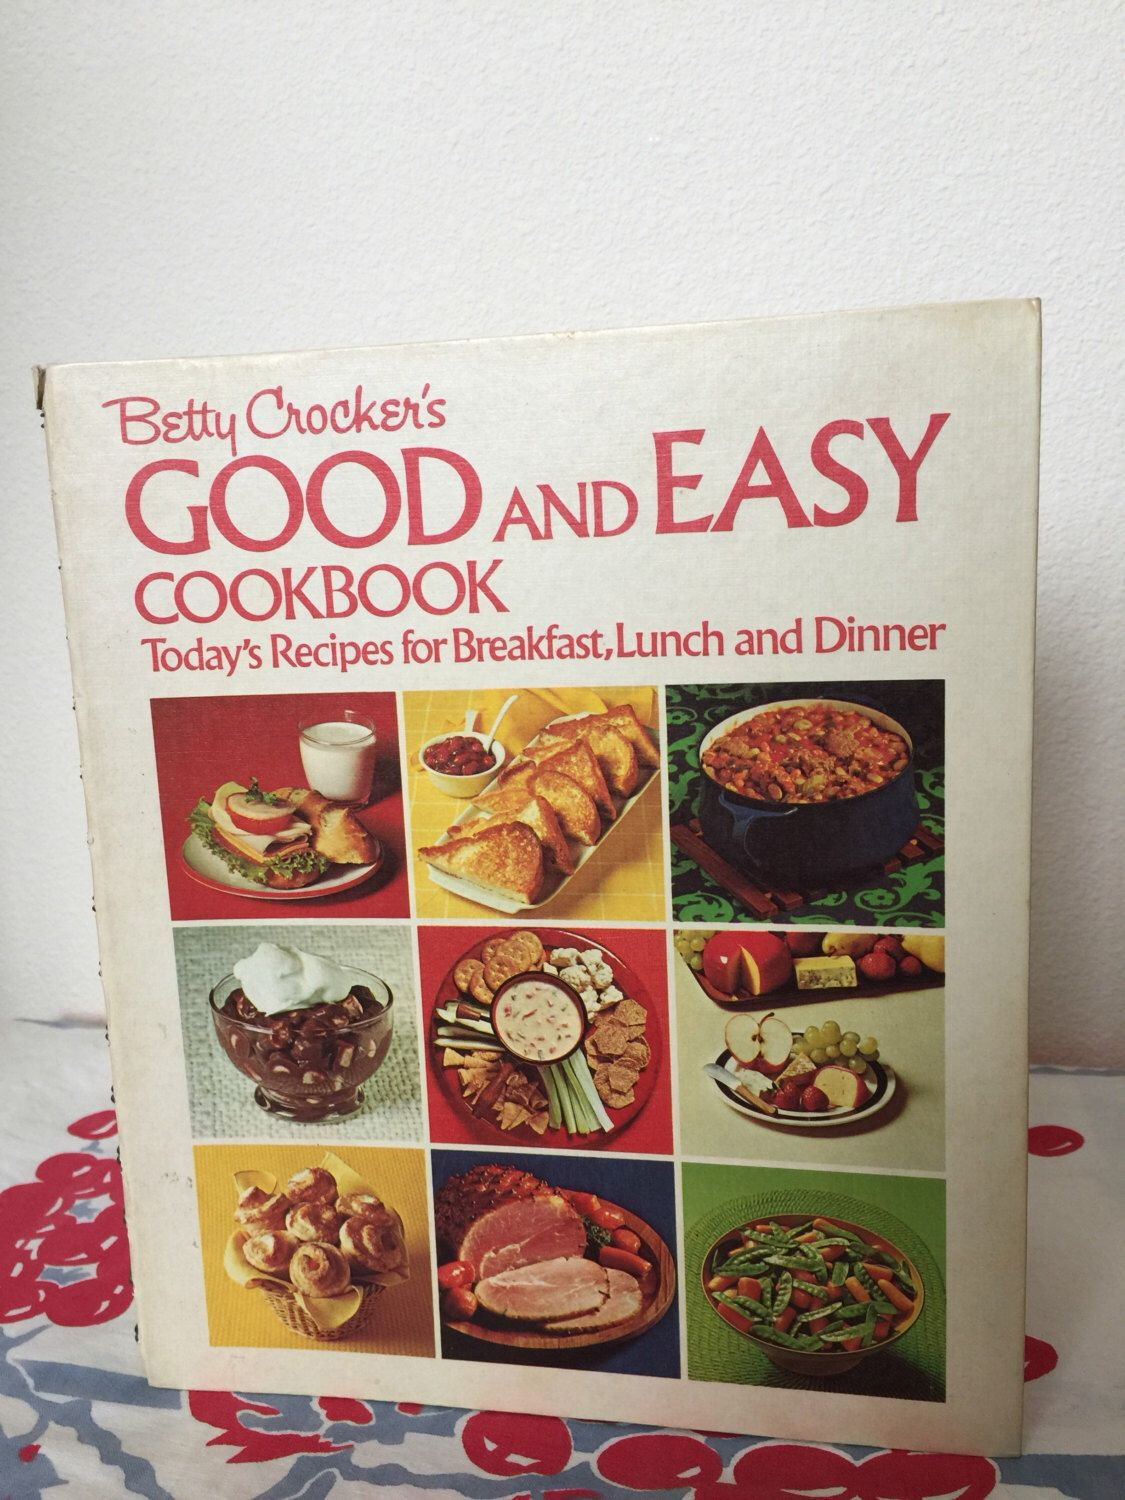 Betty Crocker's Good and Easy Cookbook, 1973 by GwendolynneMay on Etsy https://www.etsy.com/listing/504675059/betty-crockers-good-and-easy-cookbook